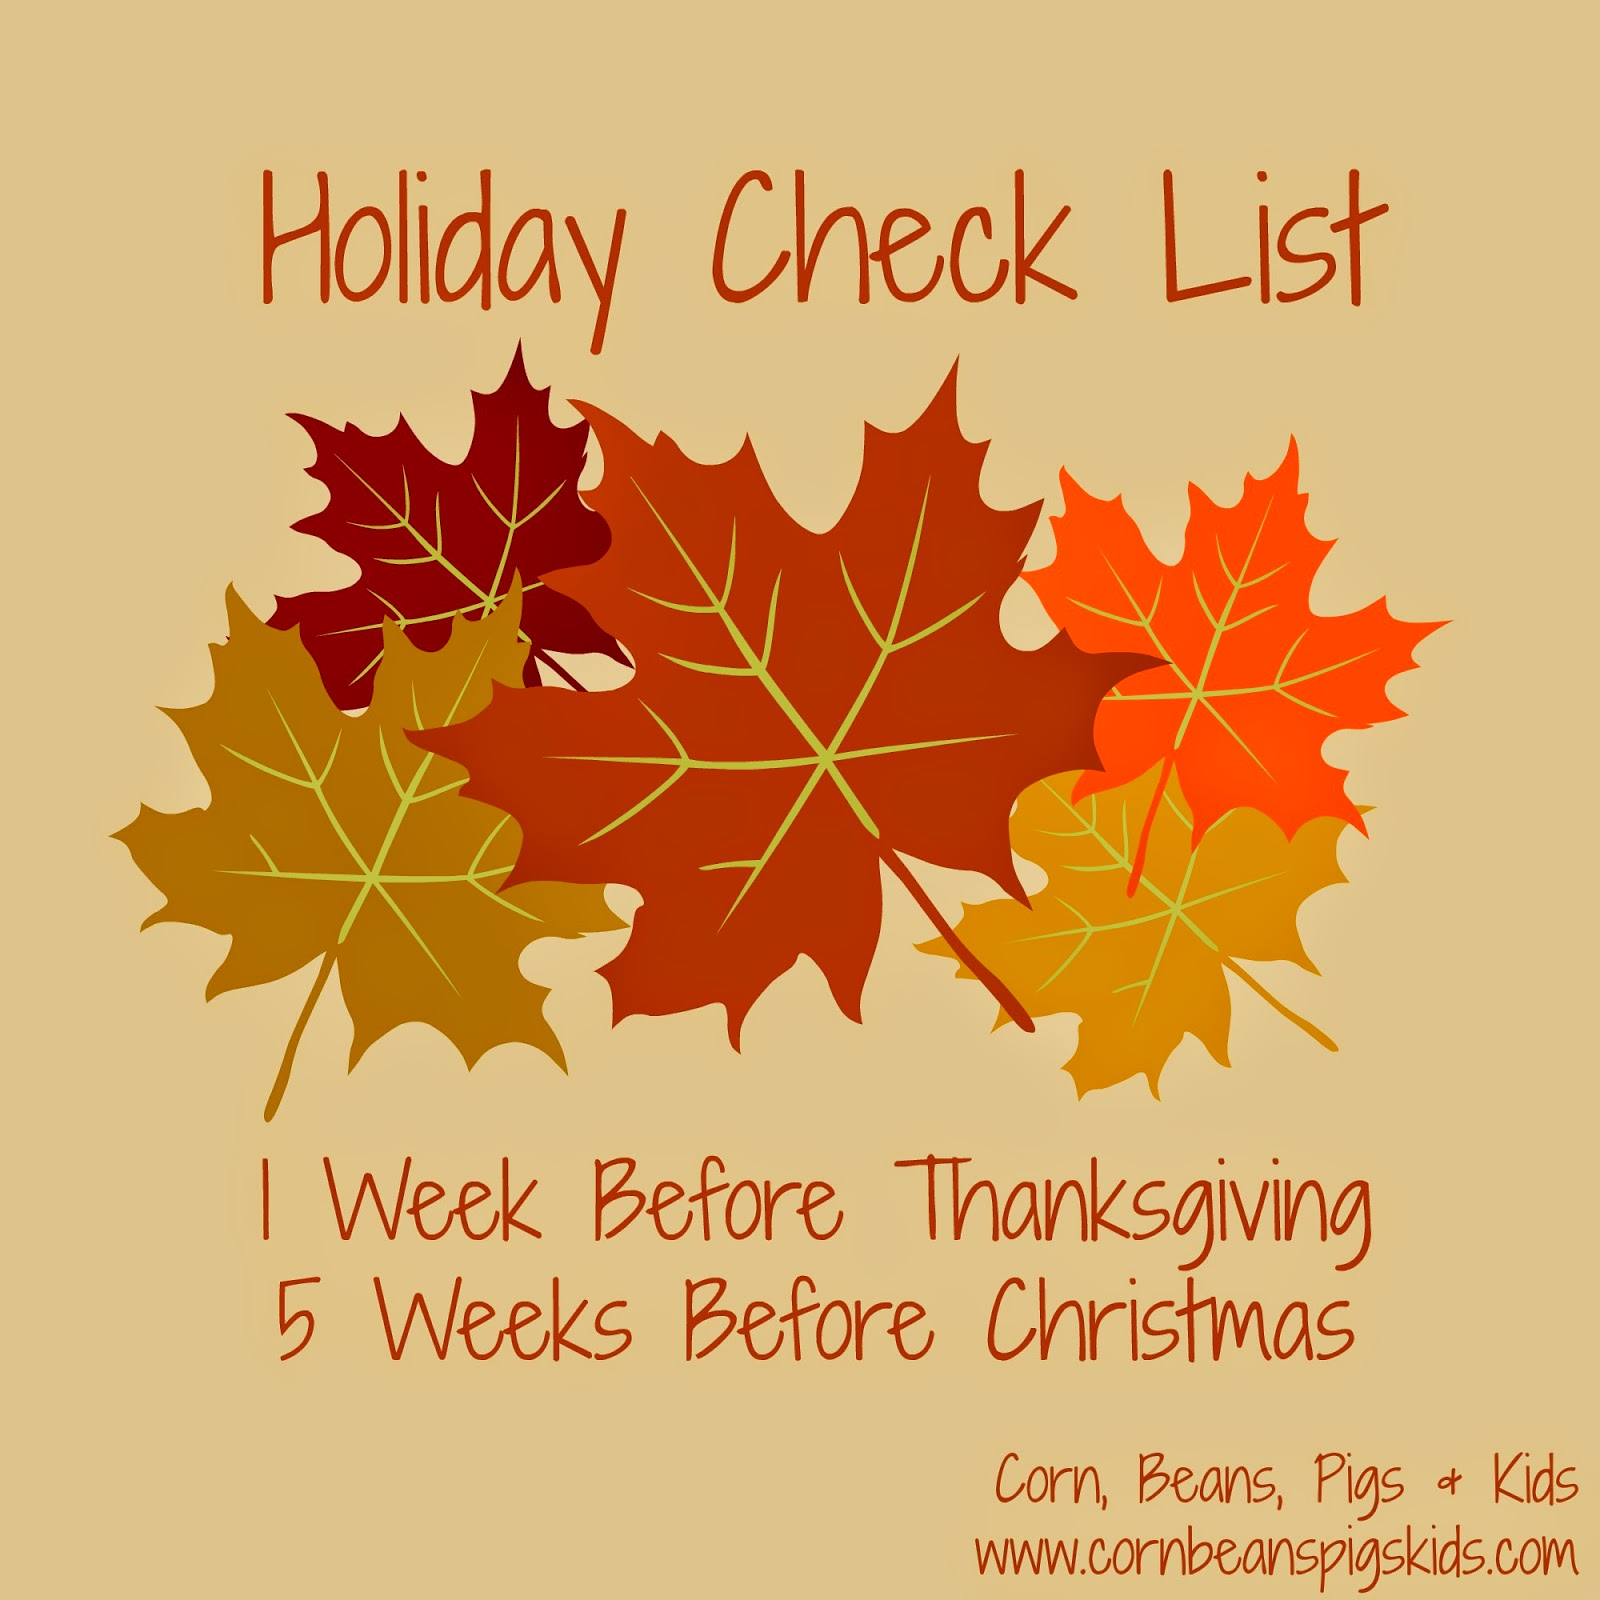 Holiday Check List - 1 Week Before Thanksgiving